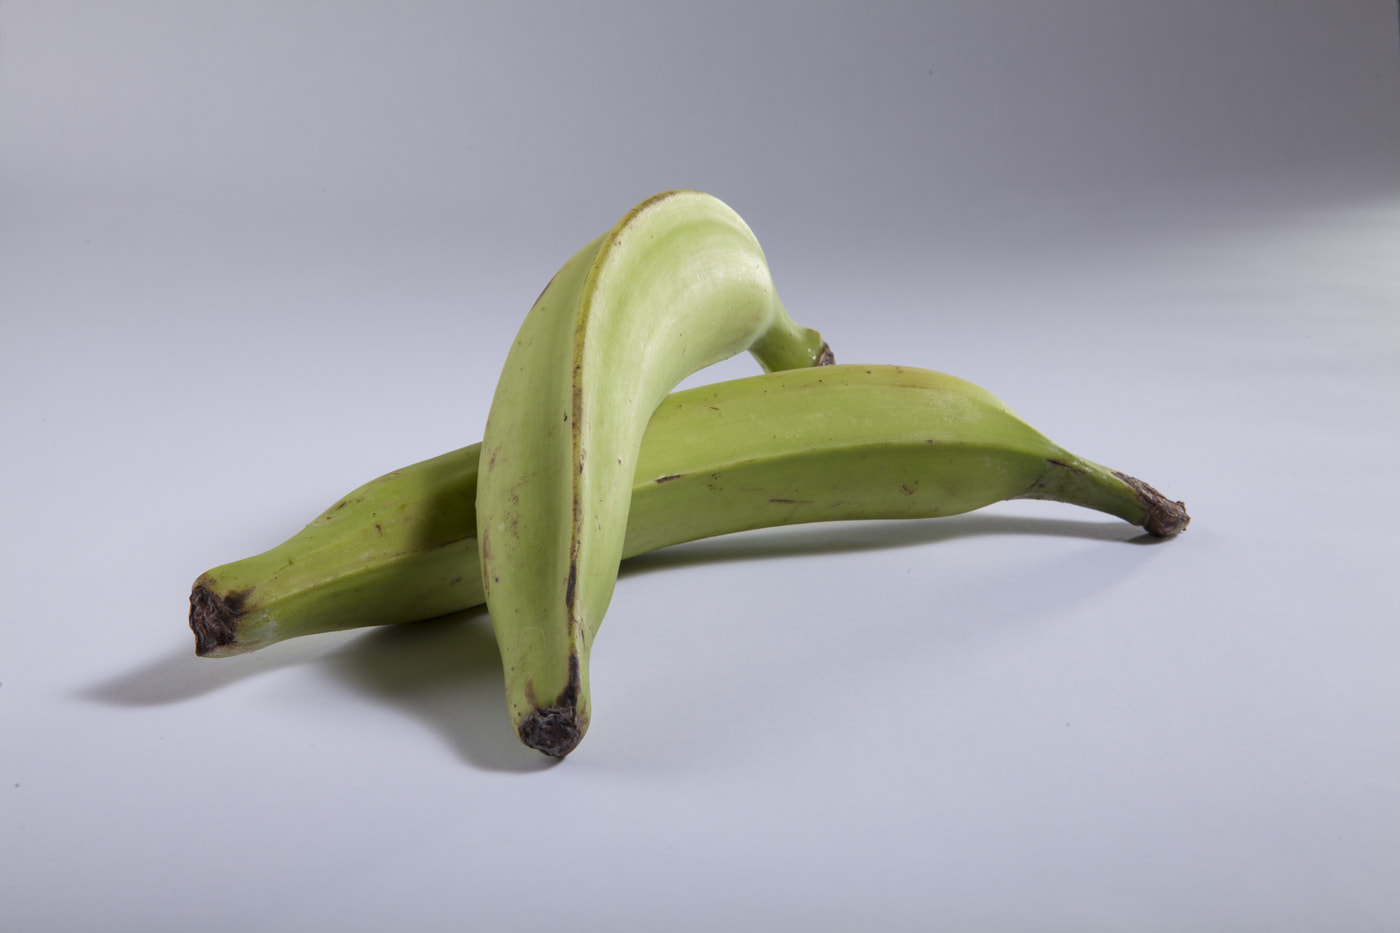 Green / Unripe / Raw Plantain